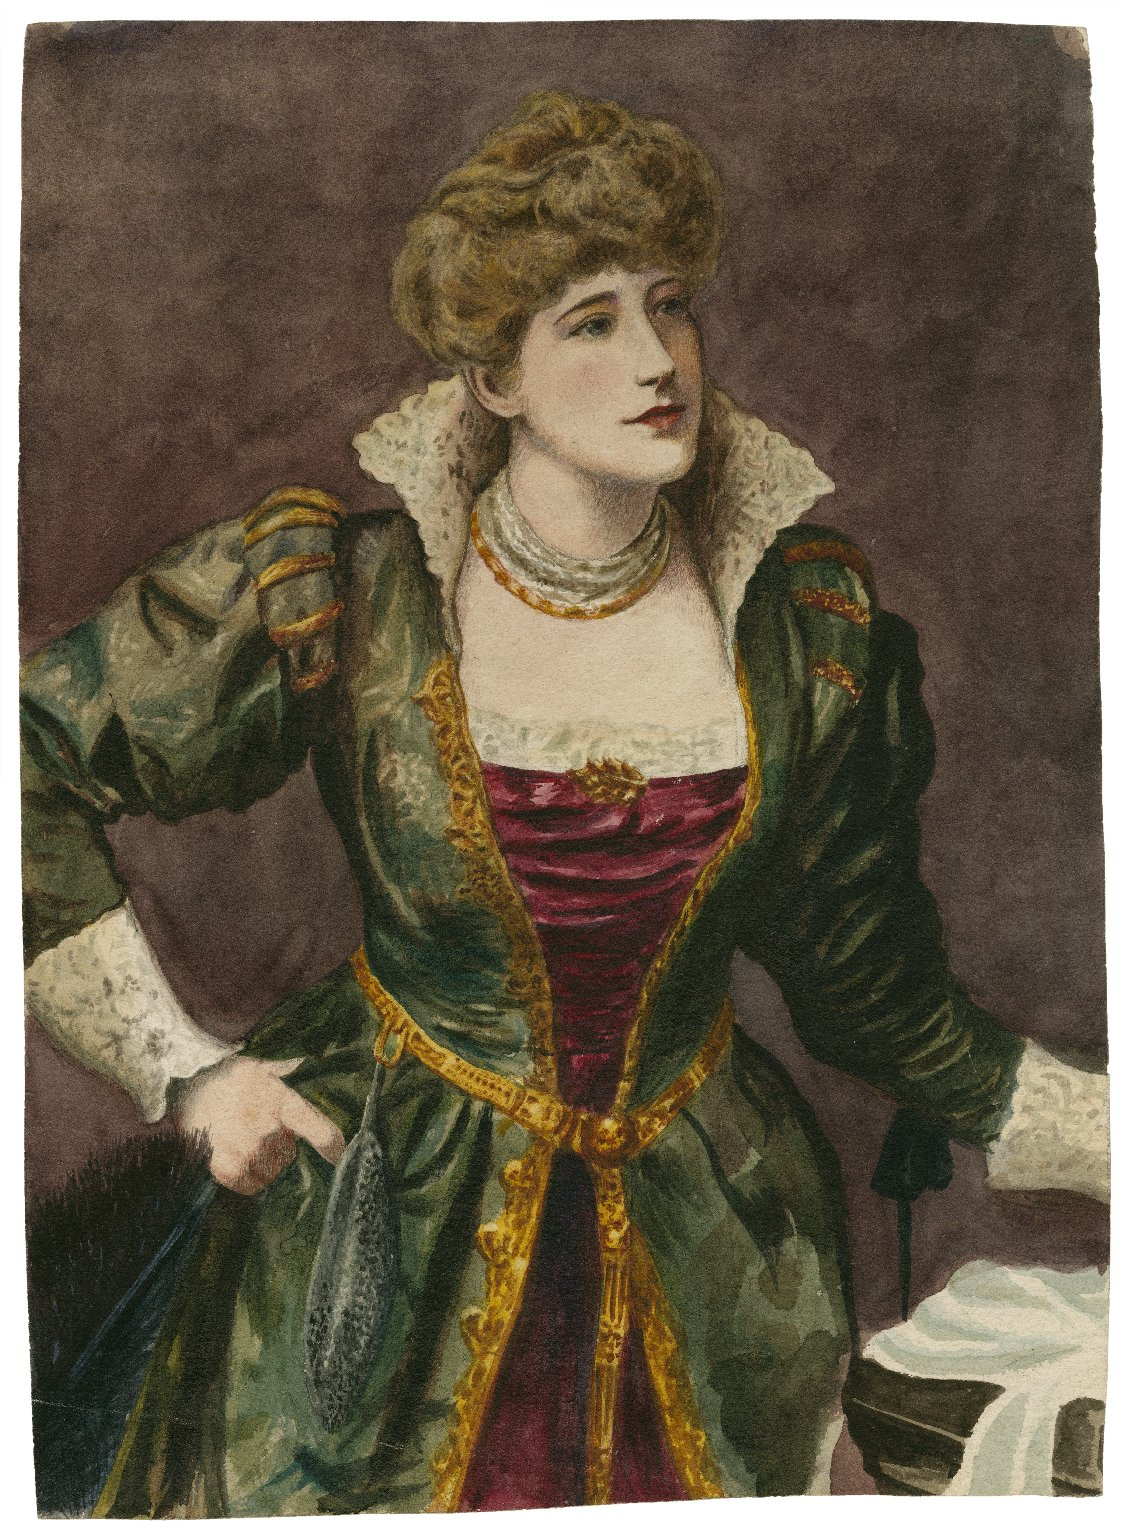 Ellen Terry as Beatrice [in Shakespeare's Much ado about nothing] [graphic].